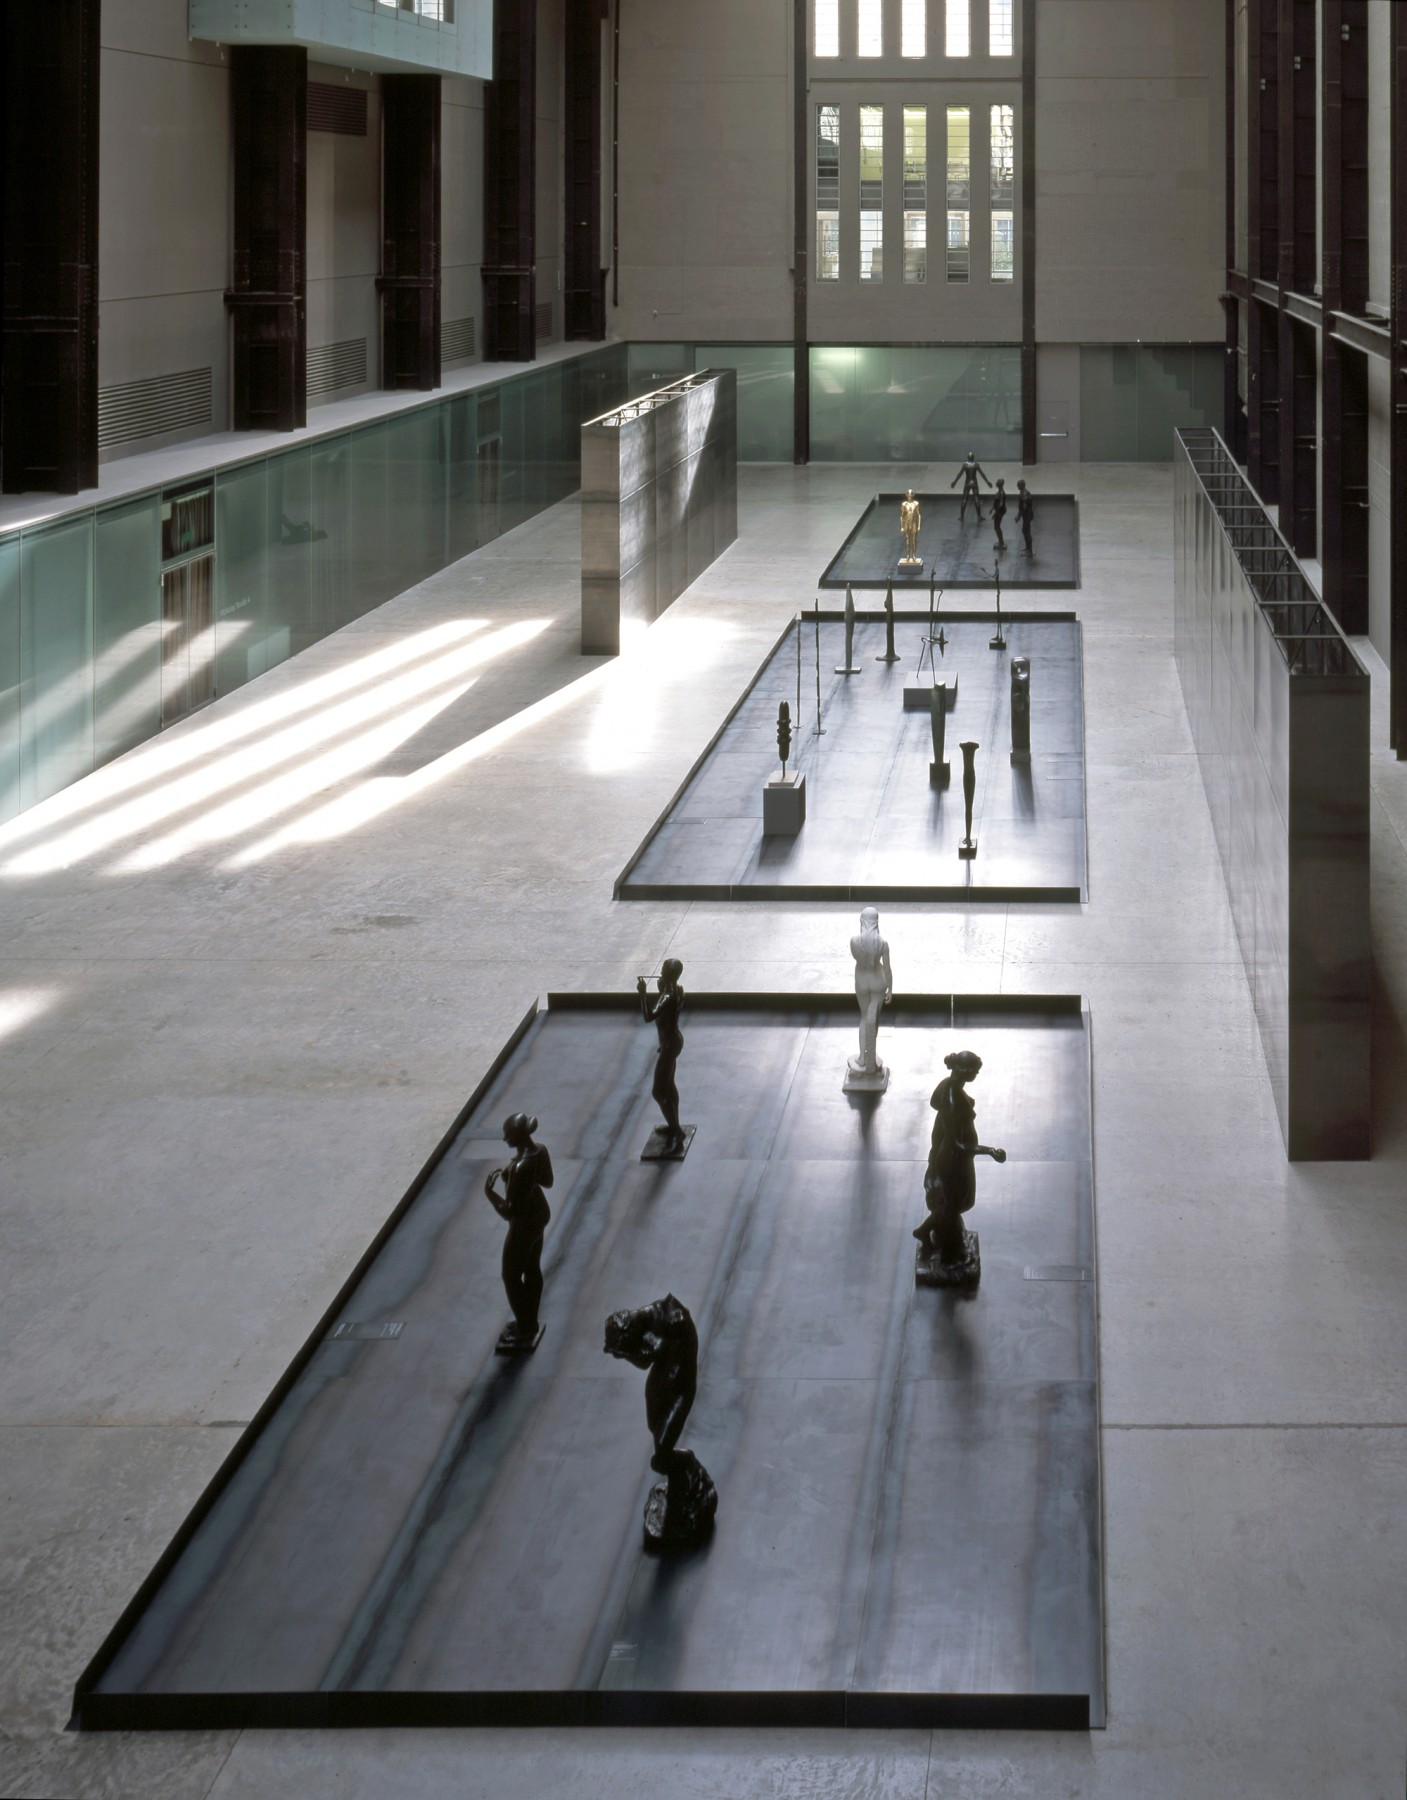 Upright-Figure-Tate-Britain-London-design-exhibition-Jamie-Fobert-Architects-Turbine-Hall-2